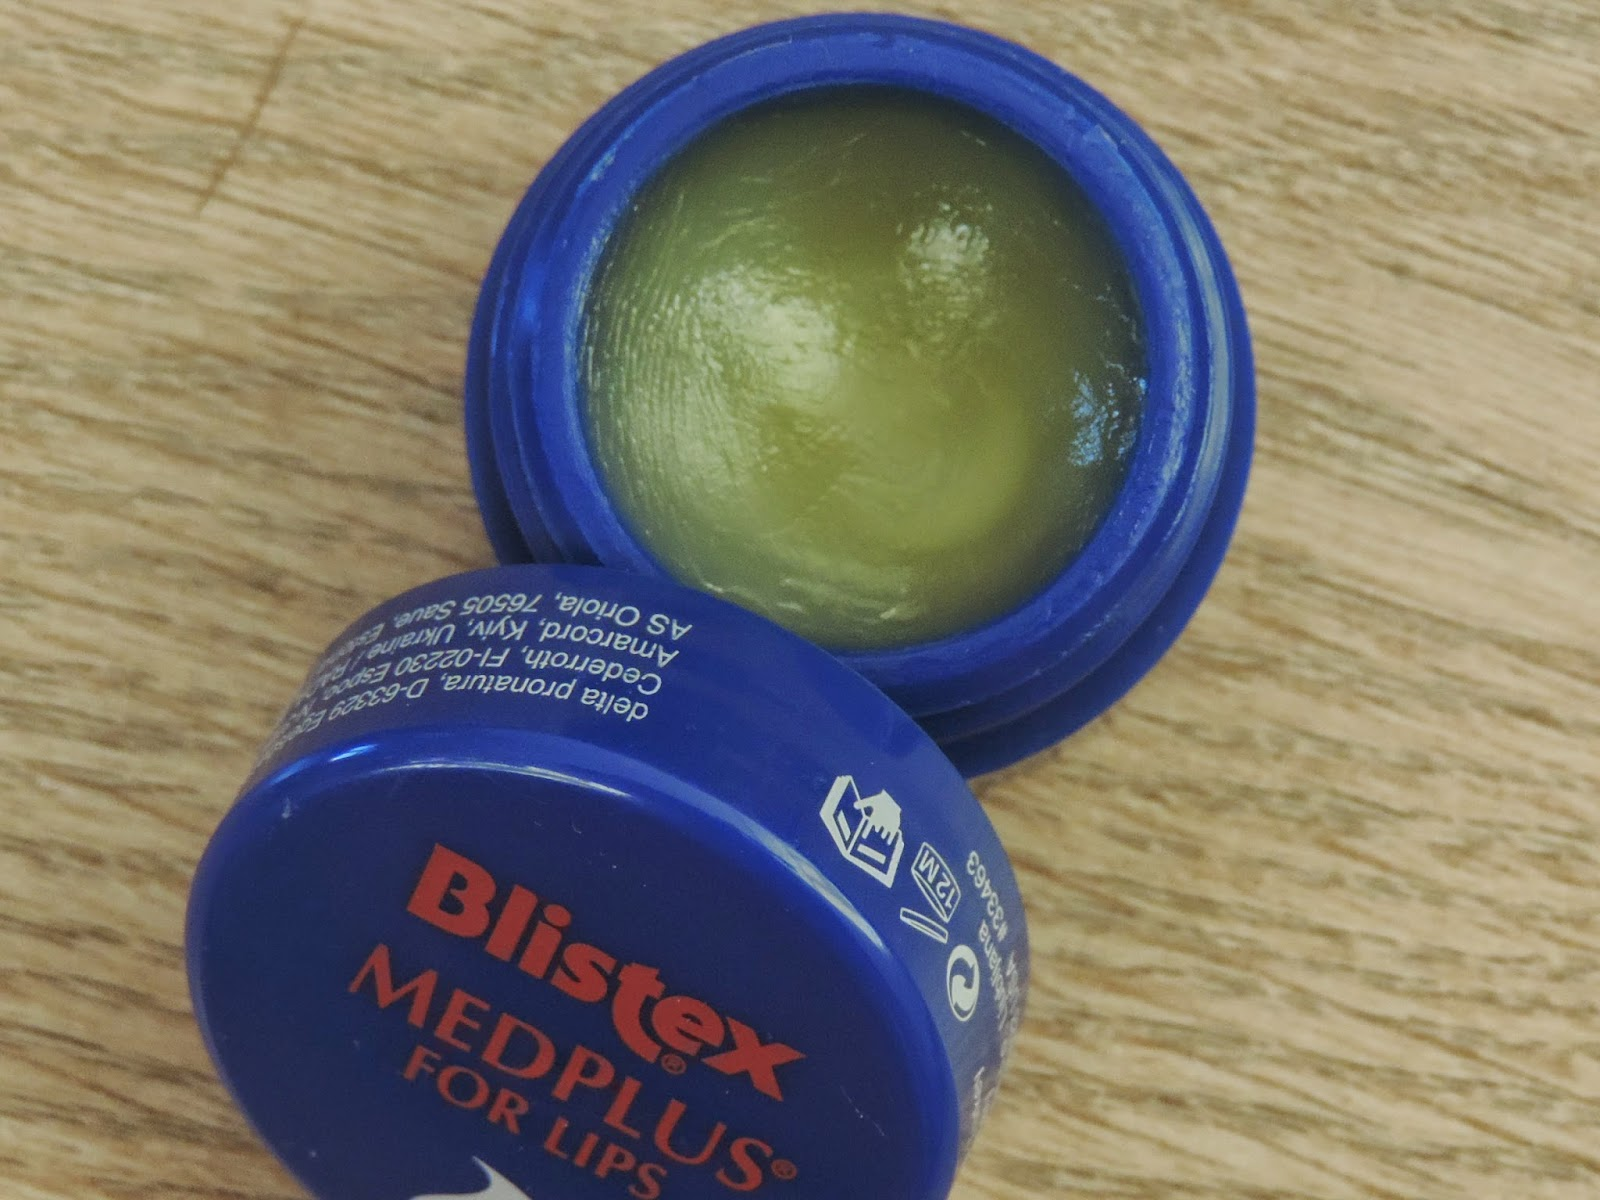 Blistex Medplus For Lips